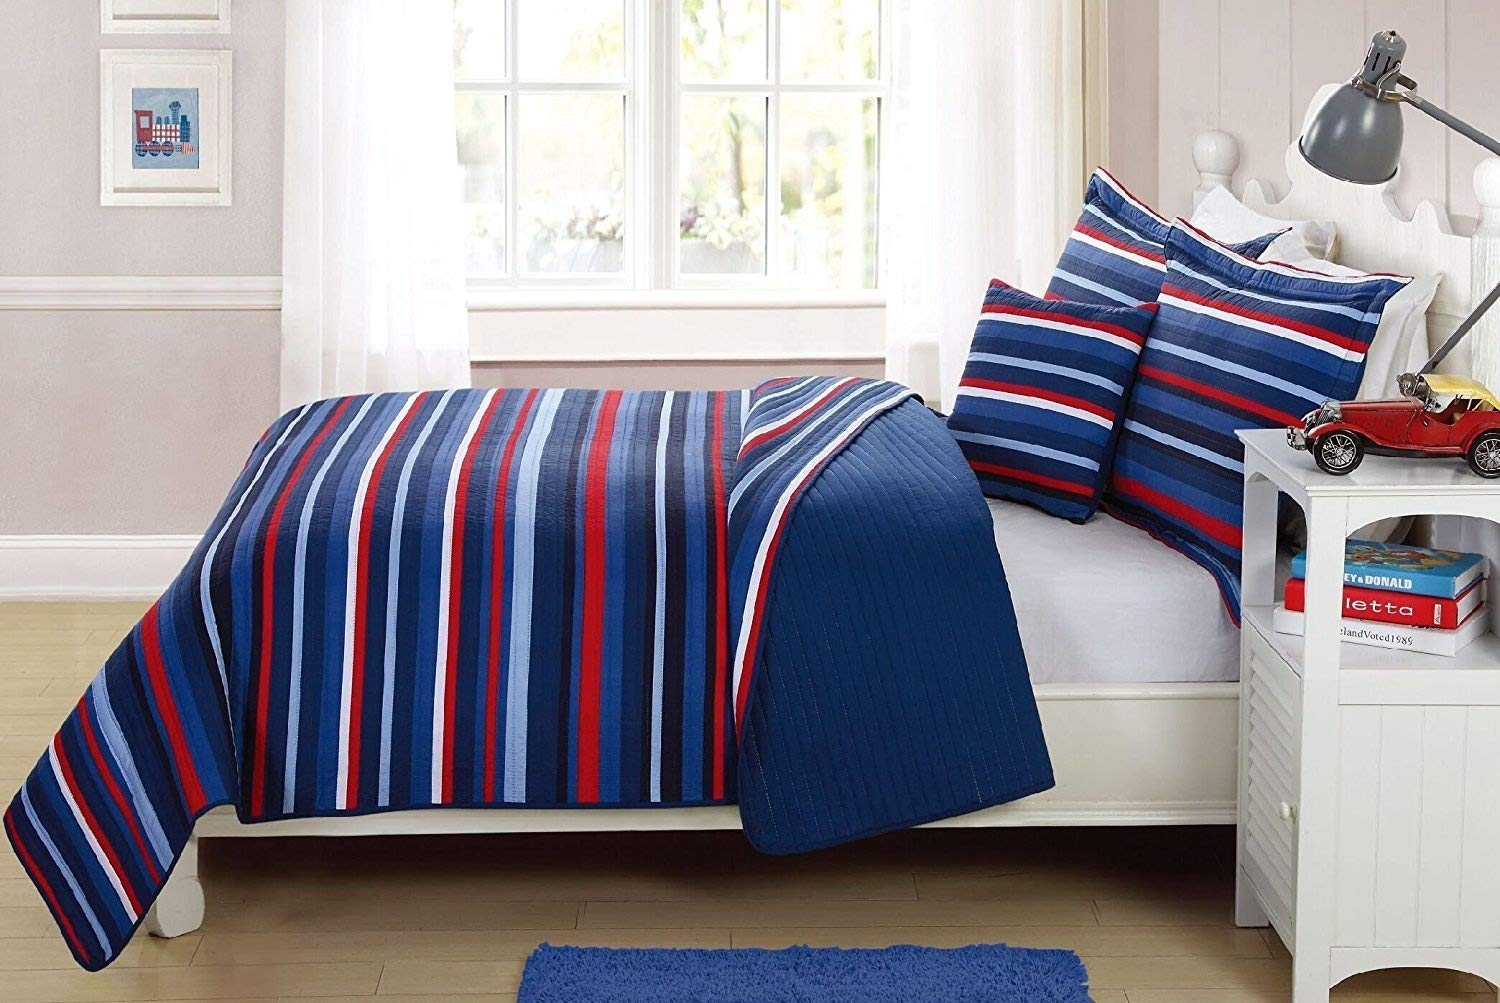 Elegant Home Decor Multicolor Light & Dark Blue Red White Striped Design Fun Colorful 3 Piece Quilt Bedspread Bedding Set with Decorative Pillow for Kids/Boys (Twin)